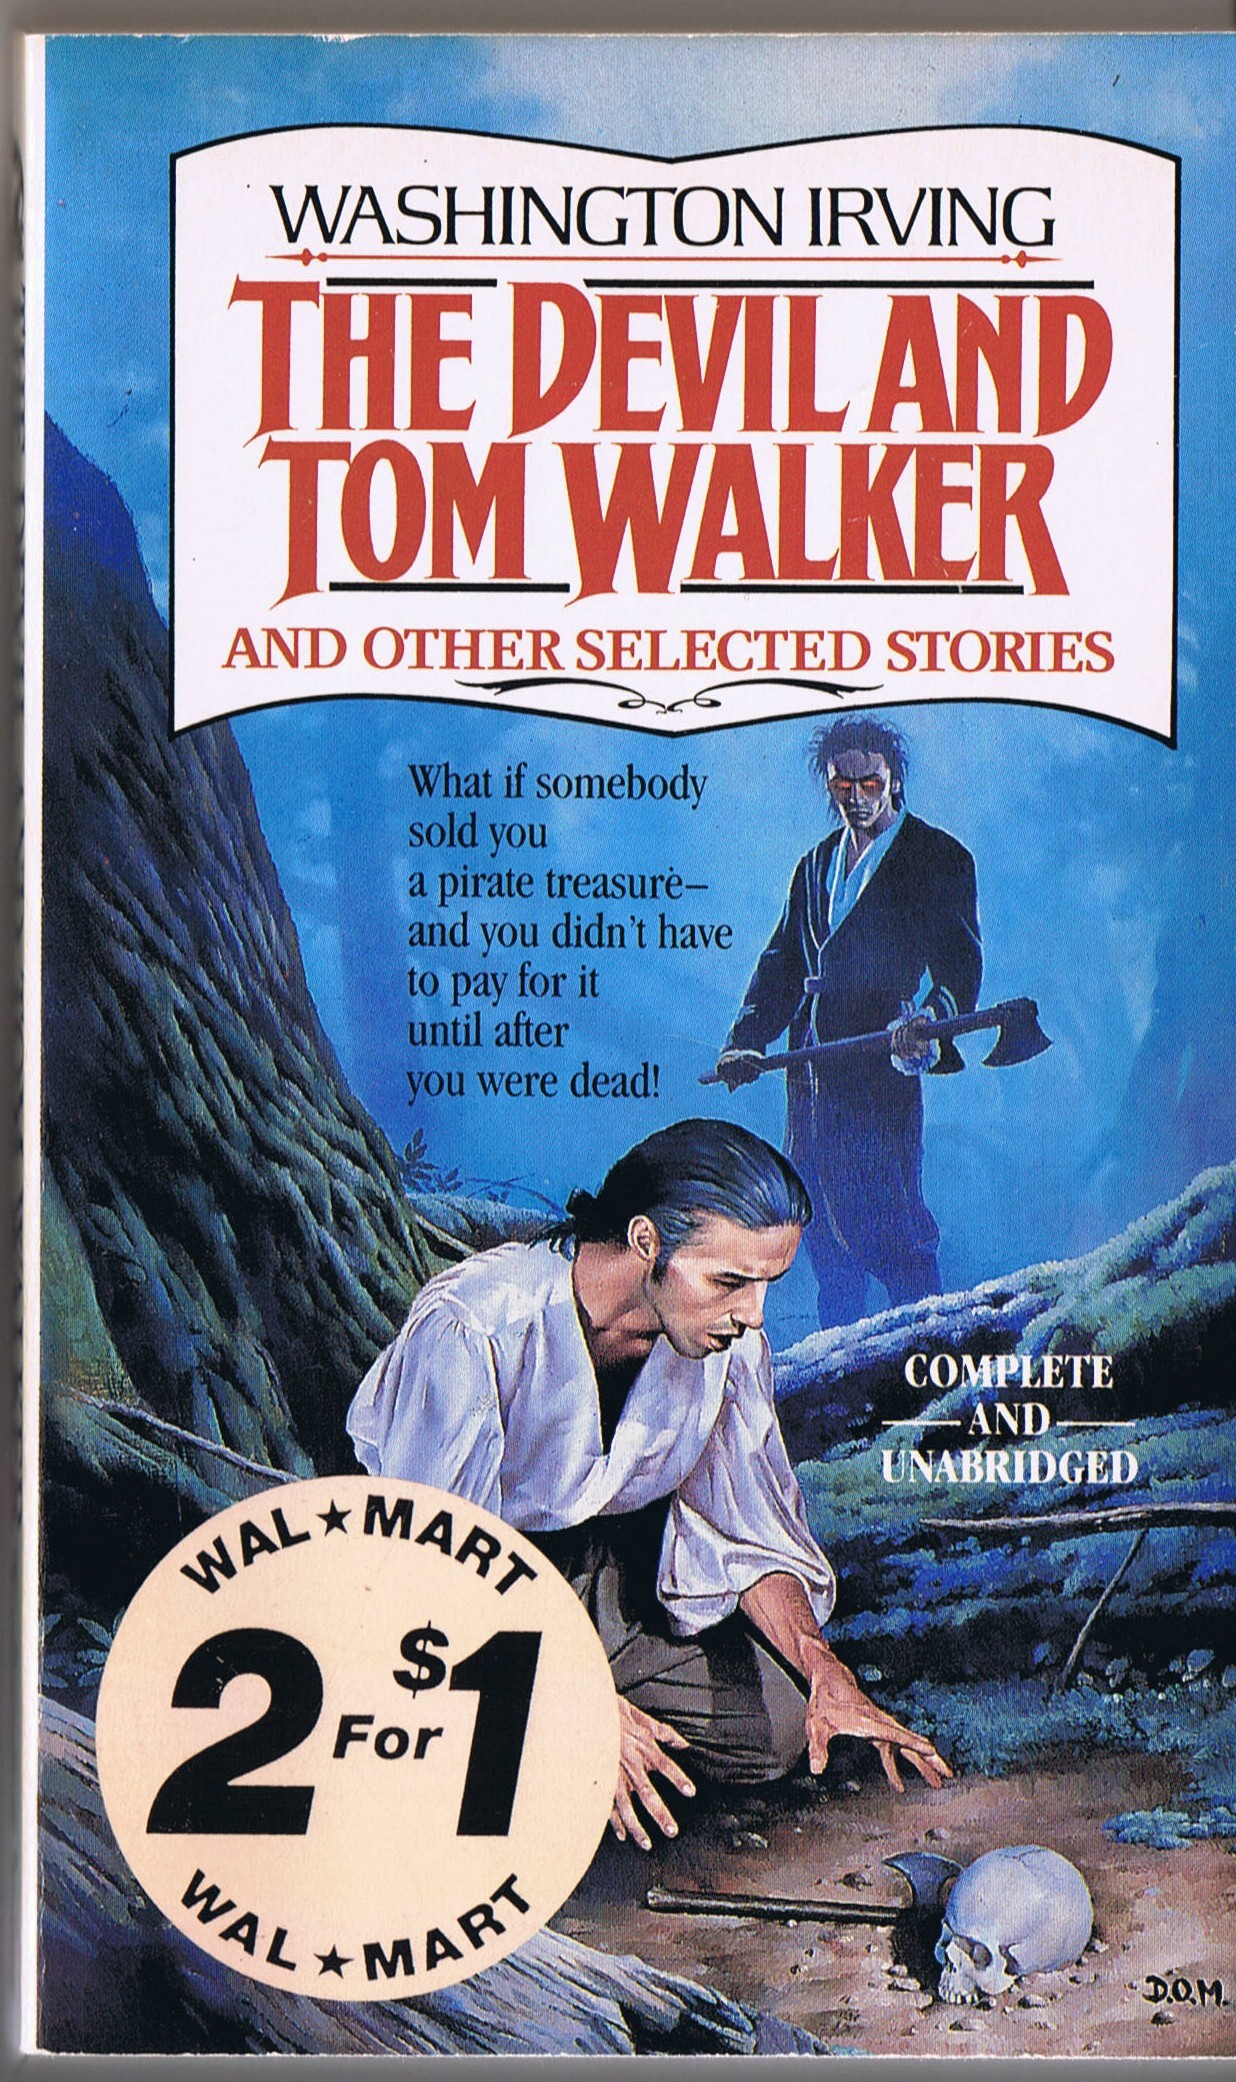 The Devil Amp Tom Walker And Other Selected Stories By